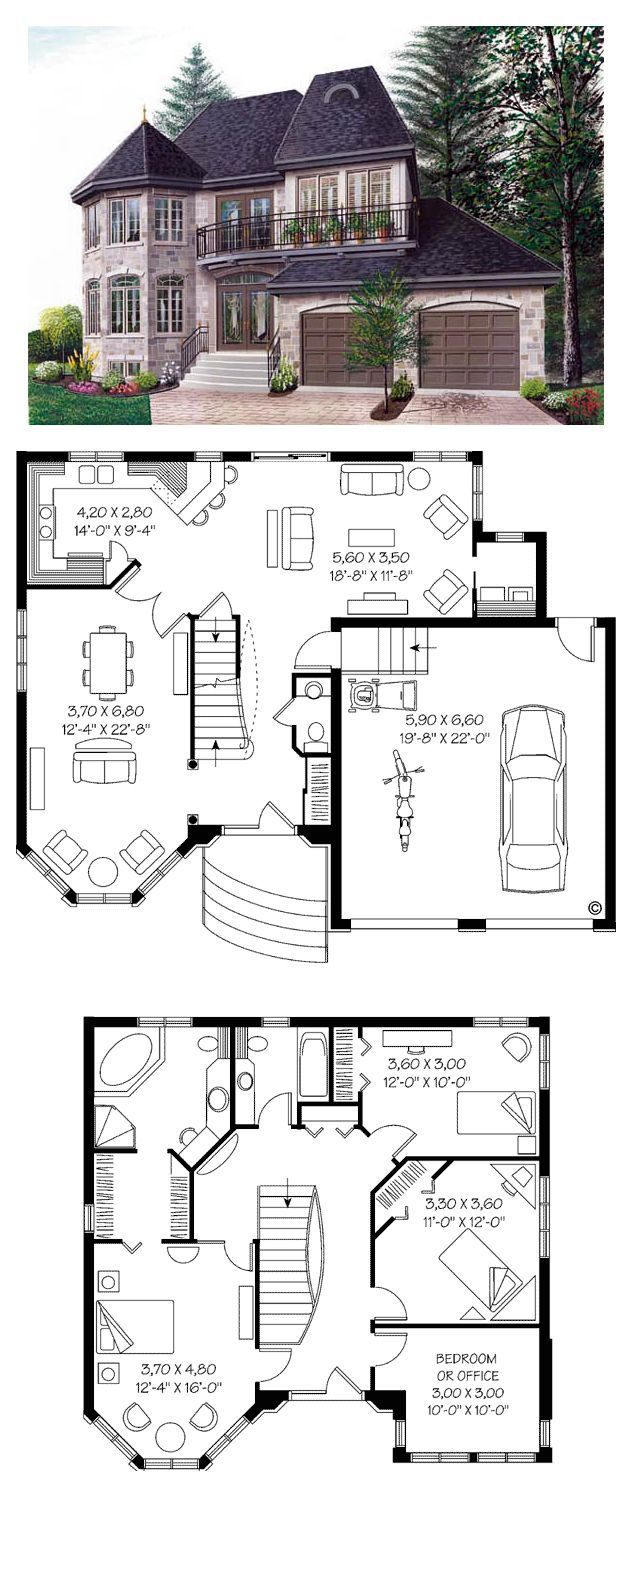 Drawn office sims Pinterest Victorian ideas layout 25+